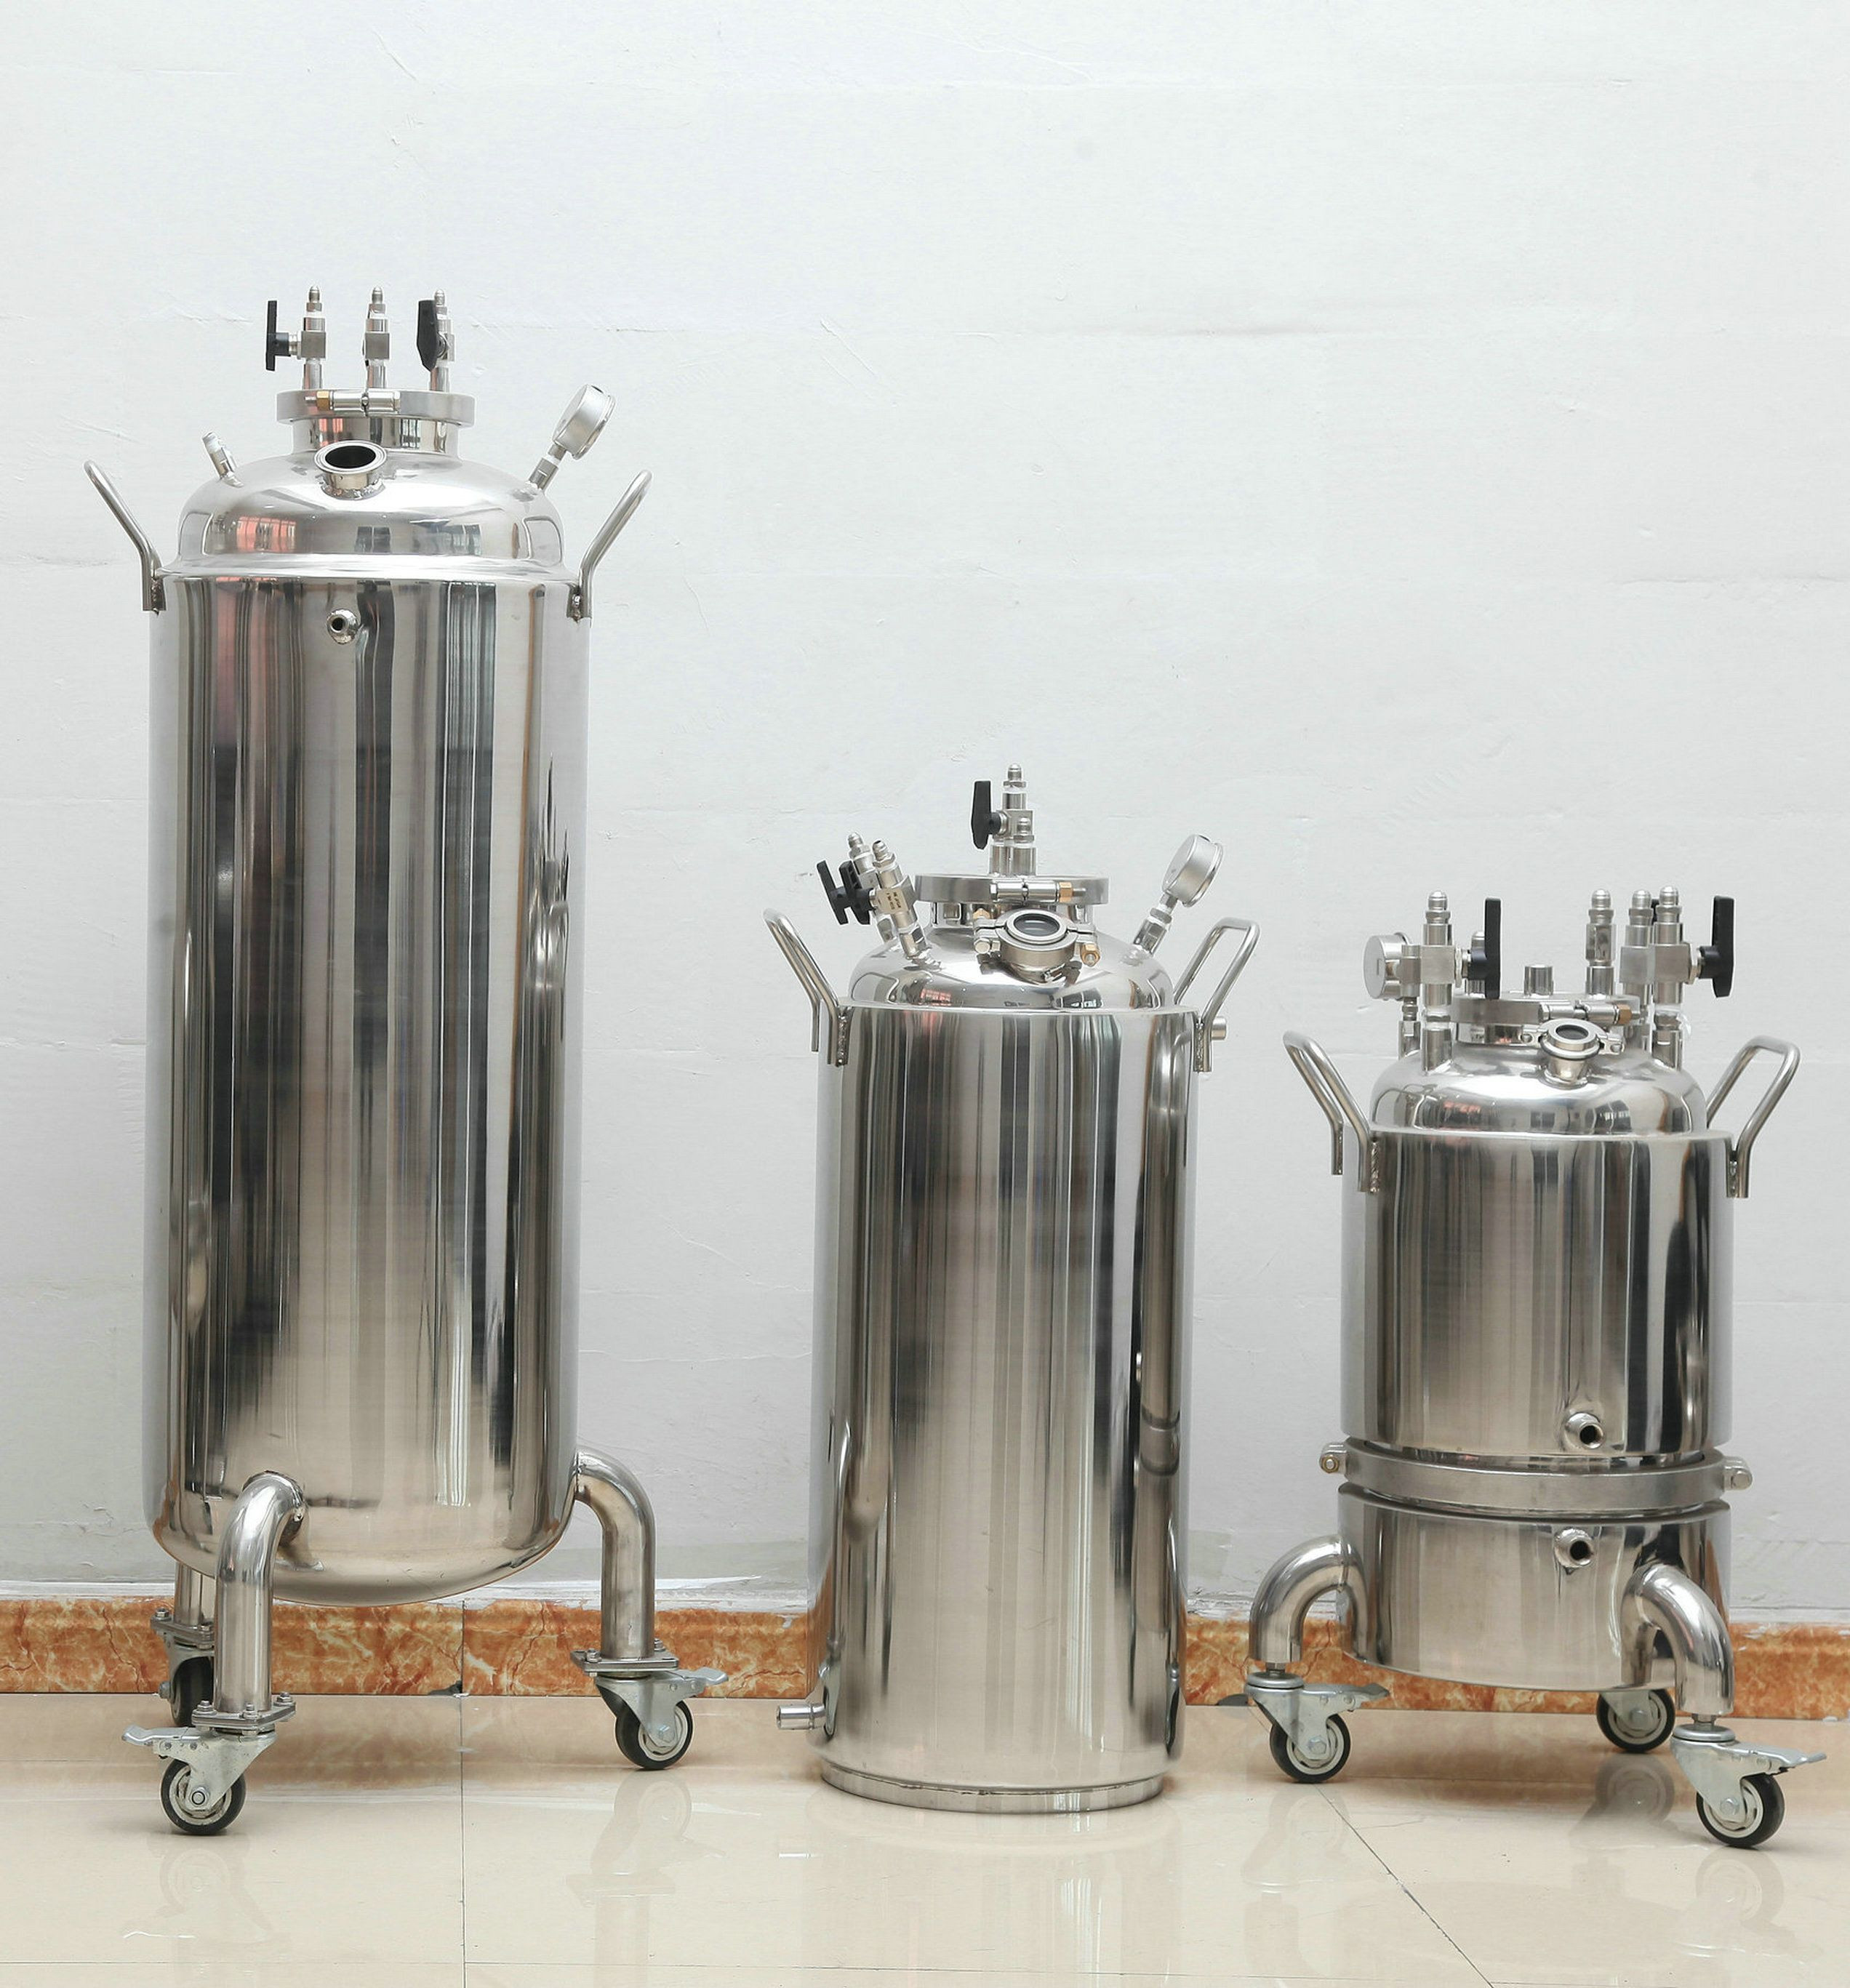 Stainless  steel   sanitary  BHO  extractor  dairy   food  grade   tank